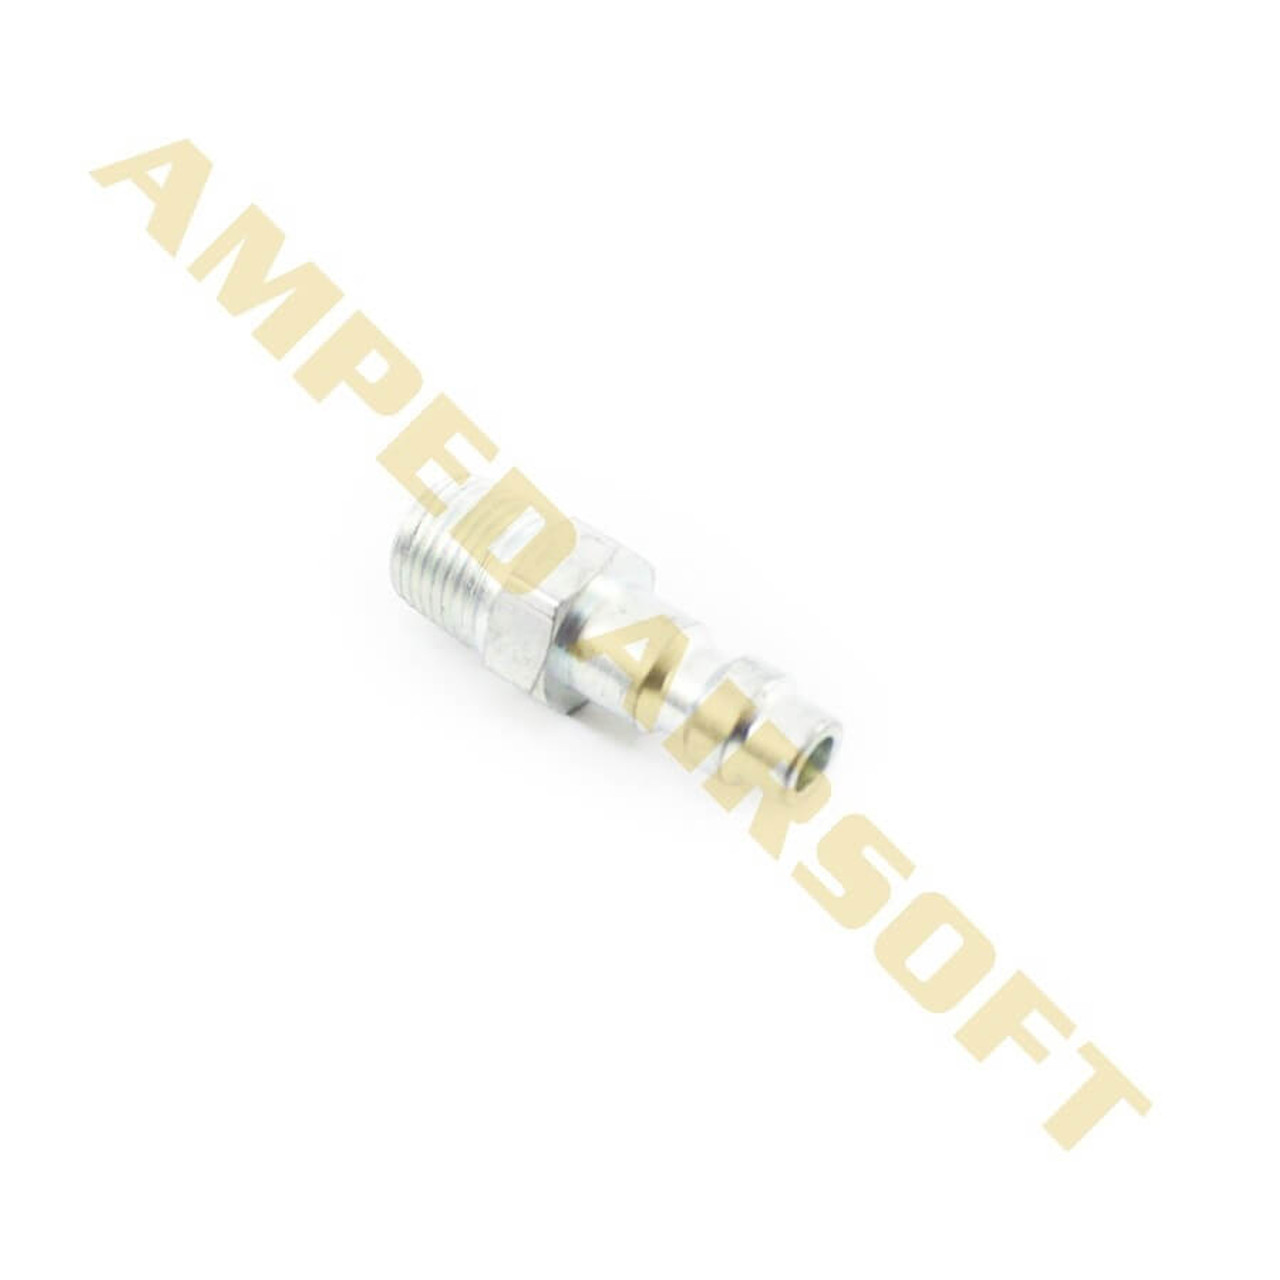 "Foster Male 1/8"" NPT Quick Disconnect Plug HPA 